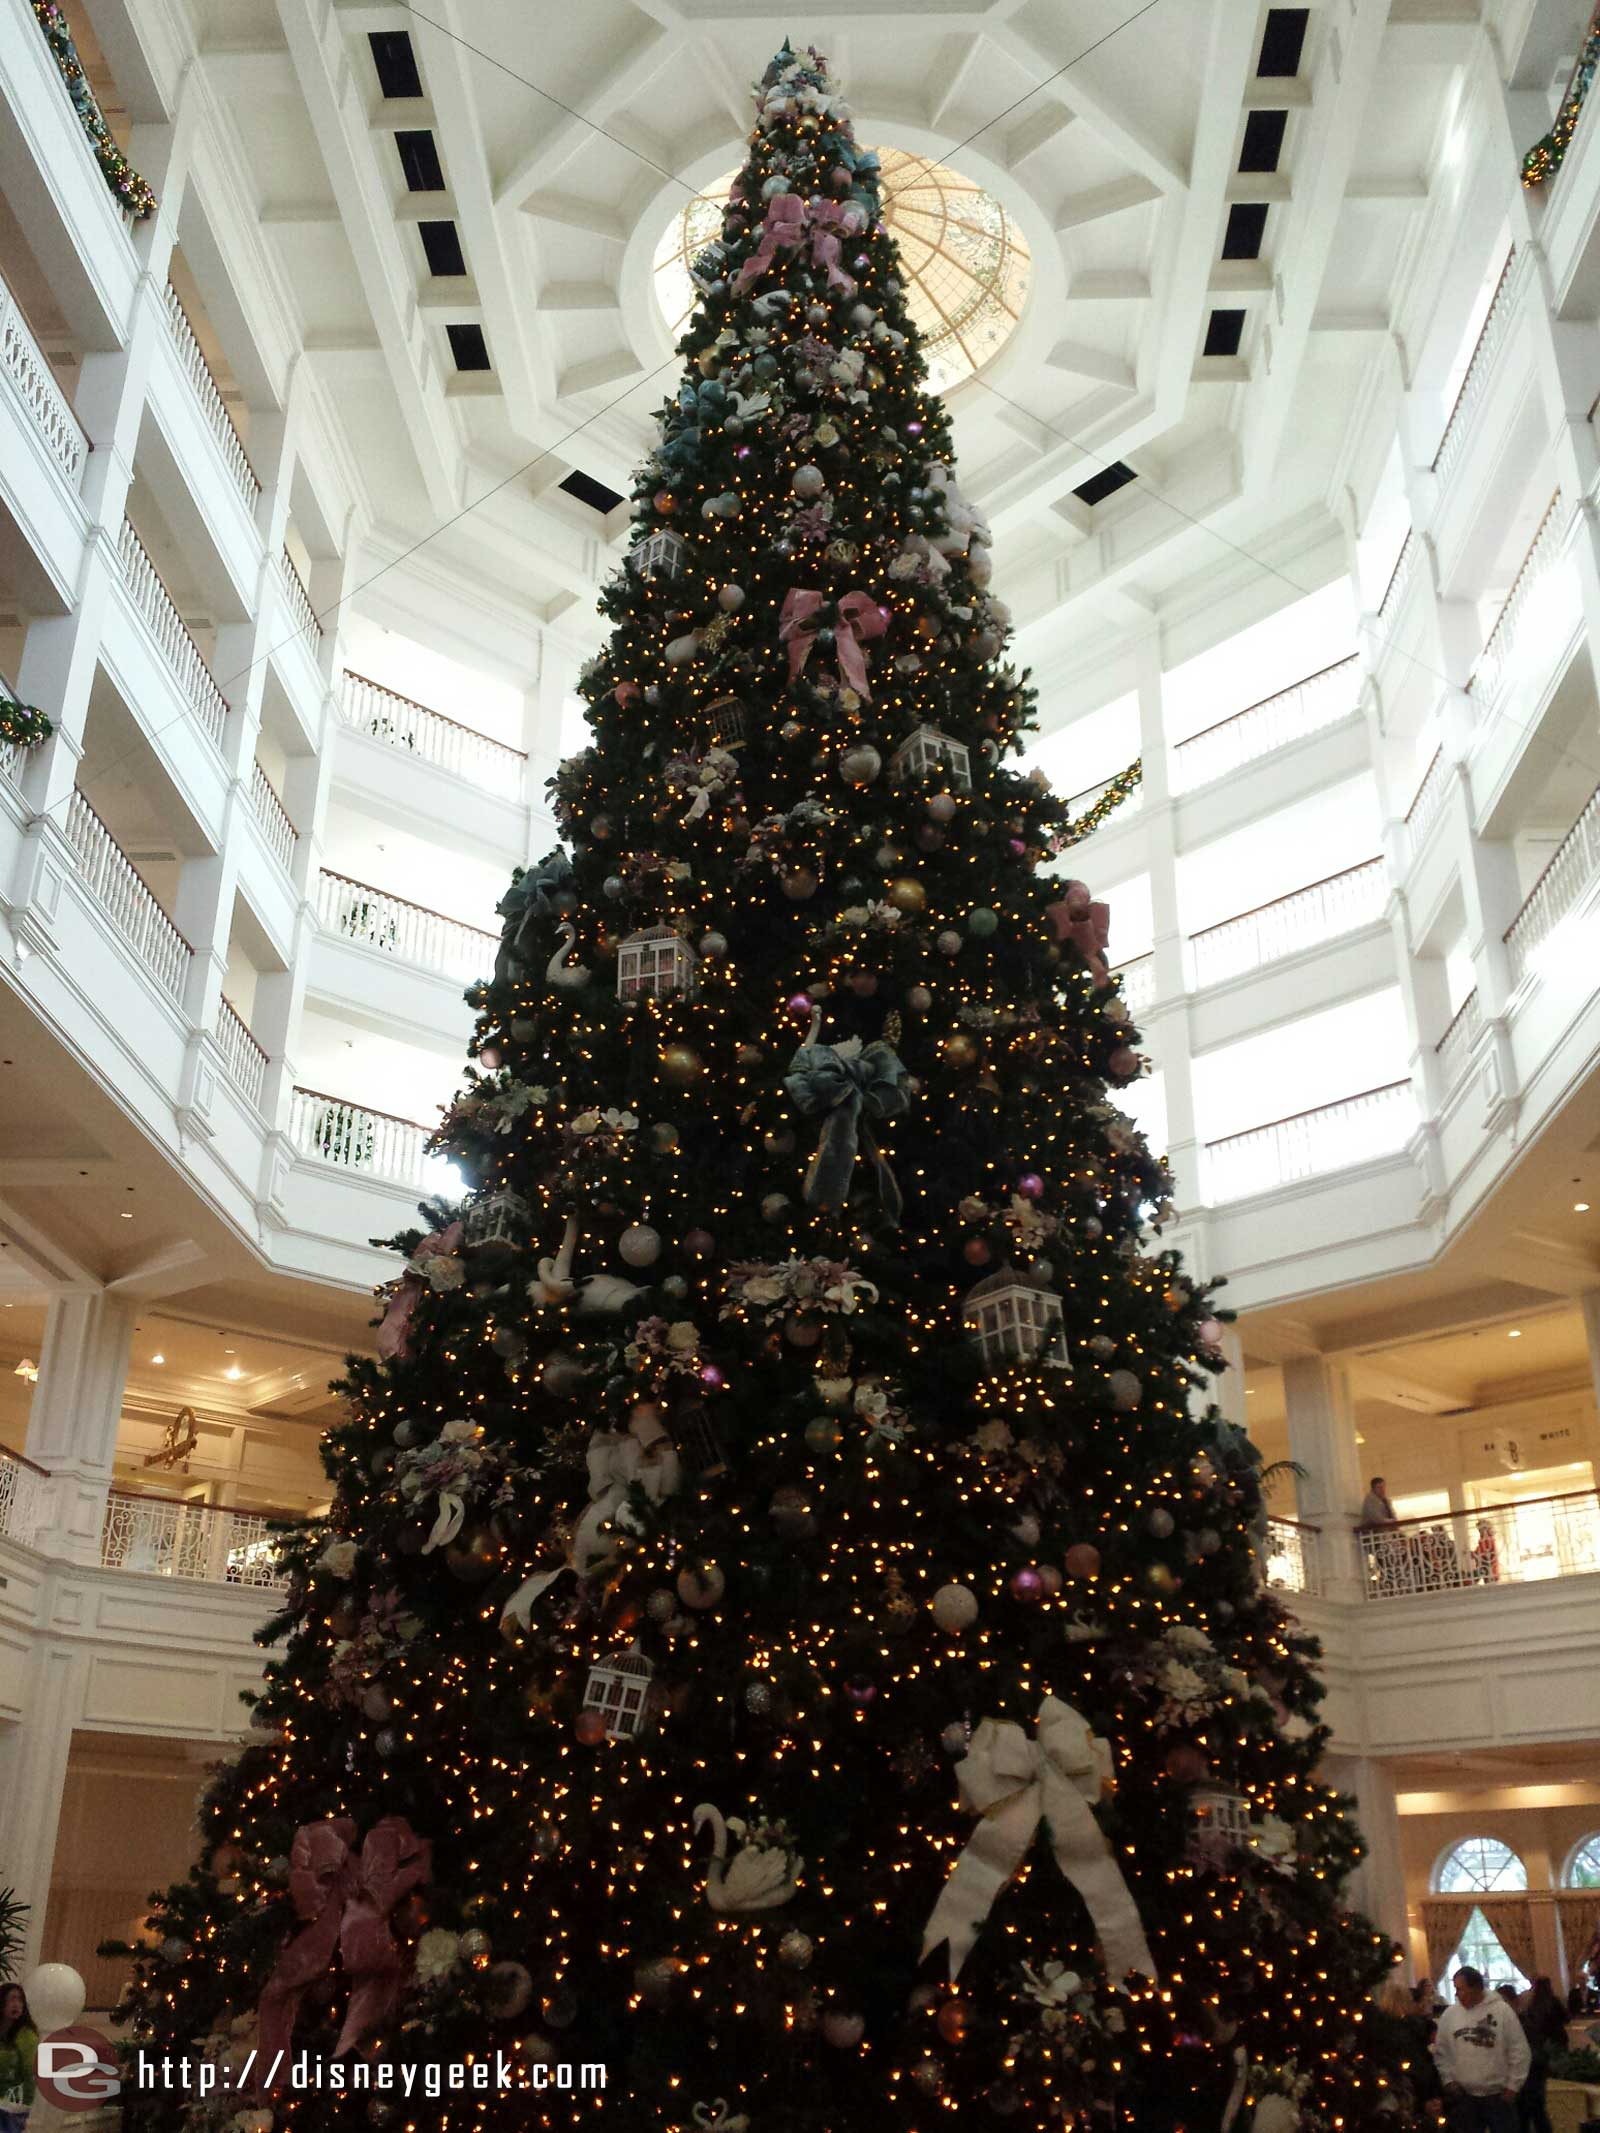 The Grand Floridian Christmas tree #WDW